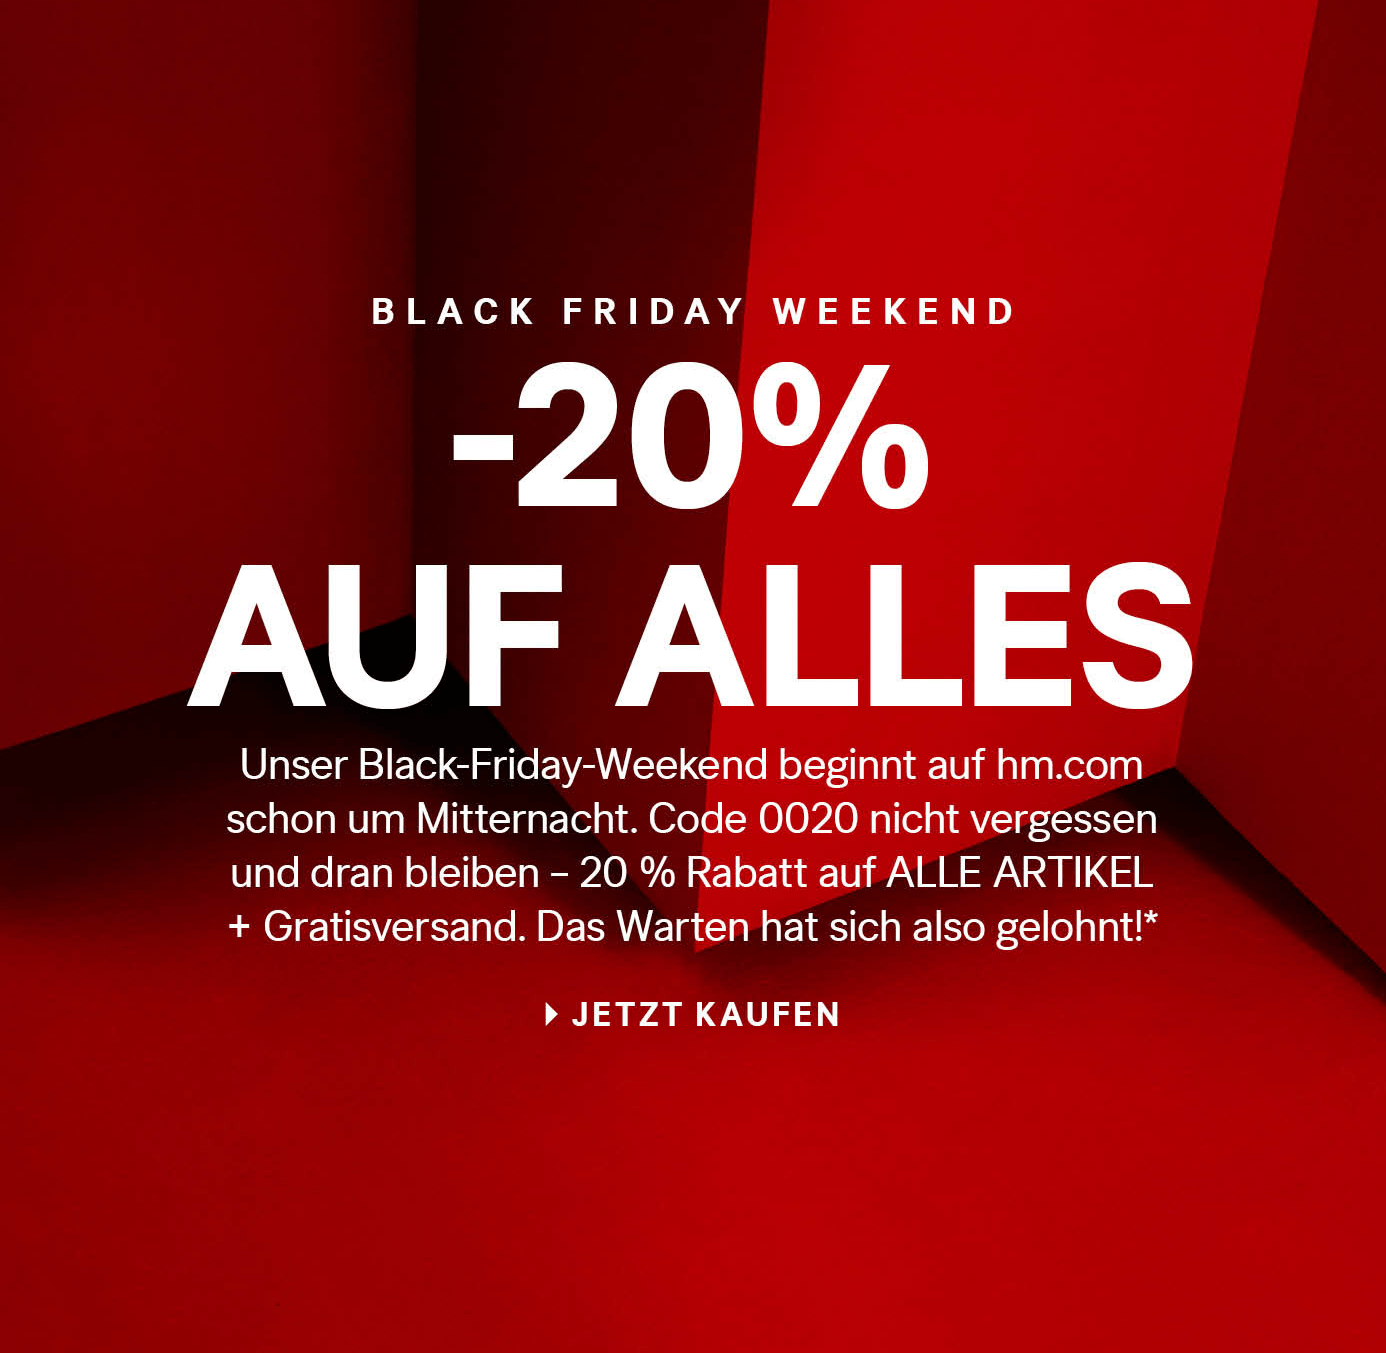 Black Friday Angebot H Andm Black Friday 2019 Die Besten Rabatte Zum Shopping Event